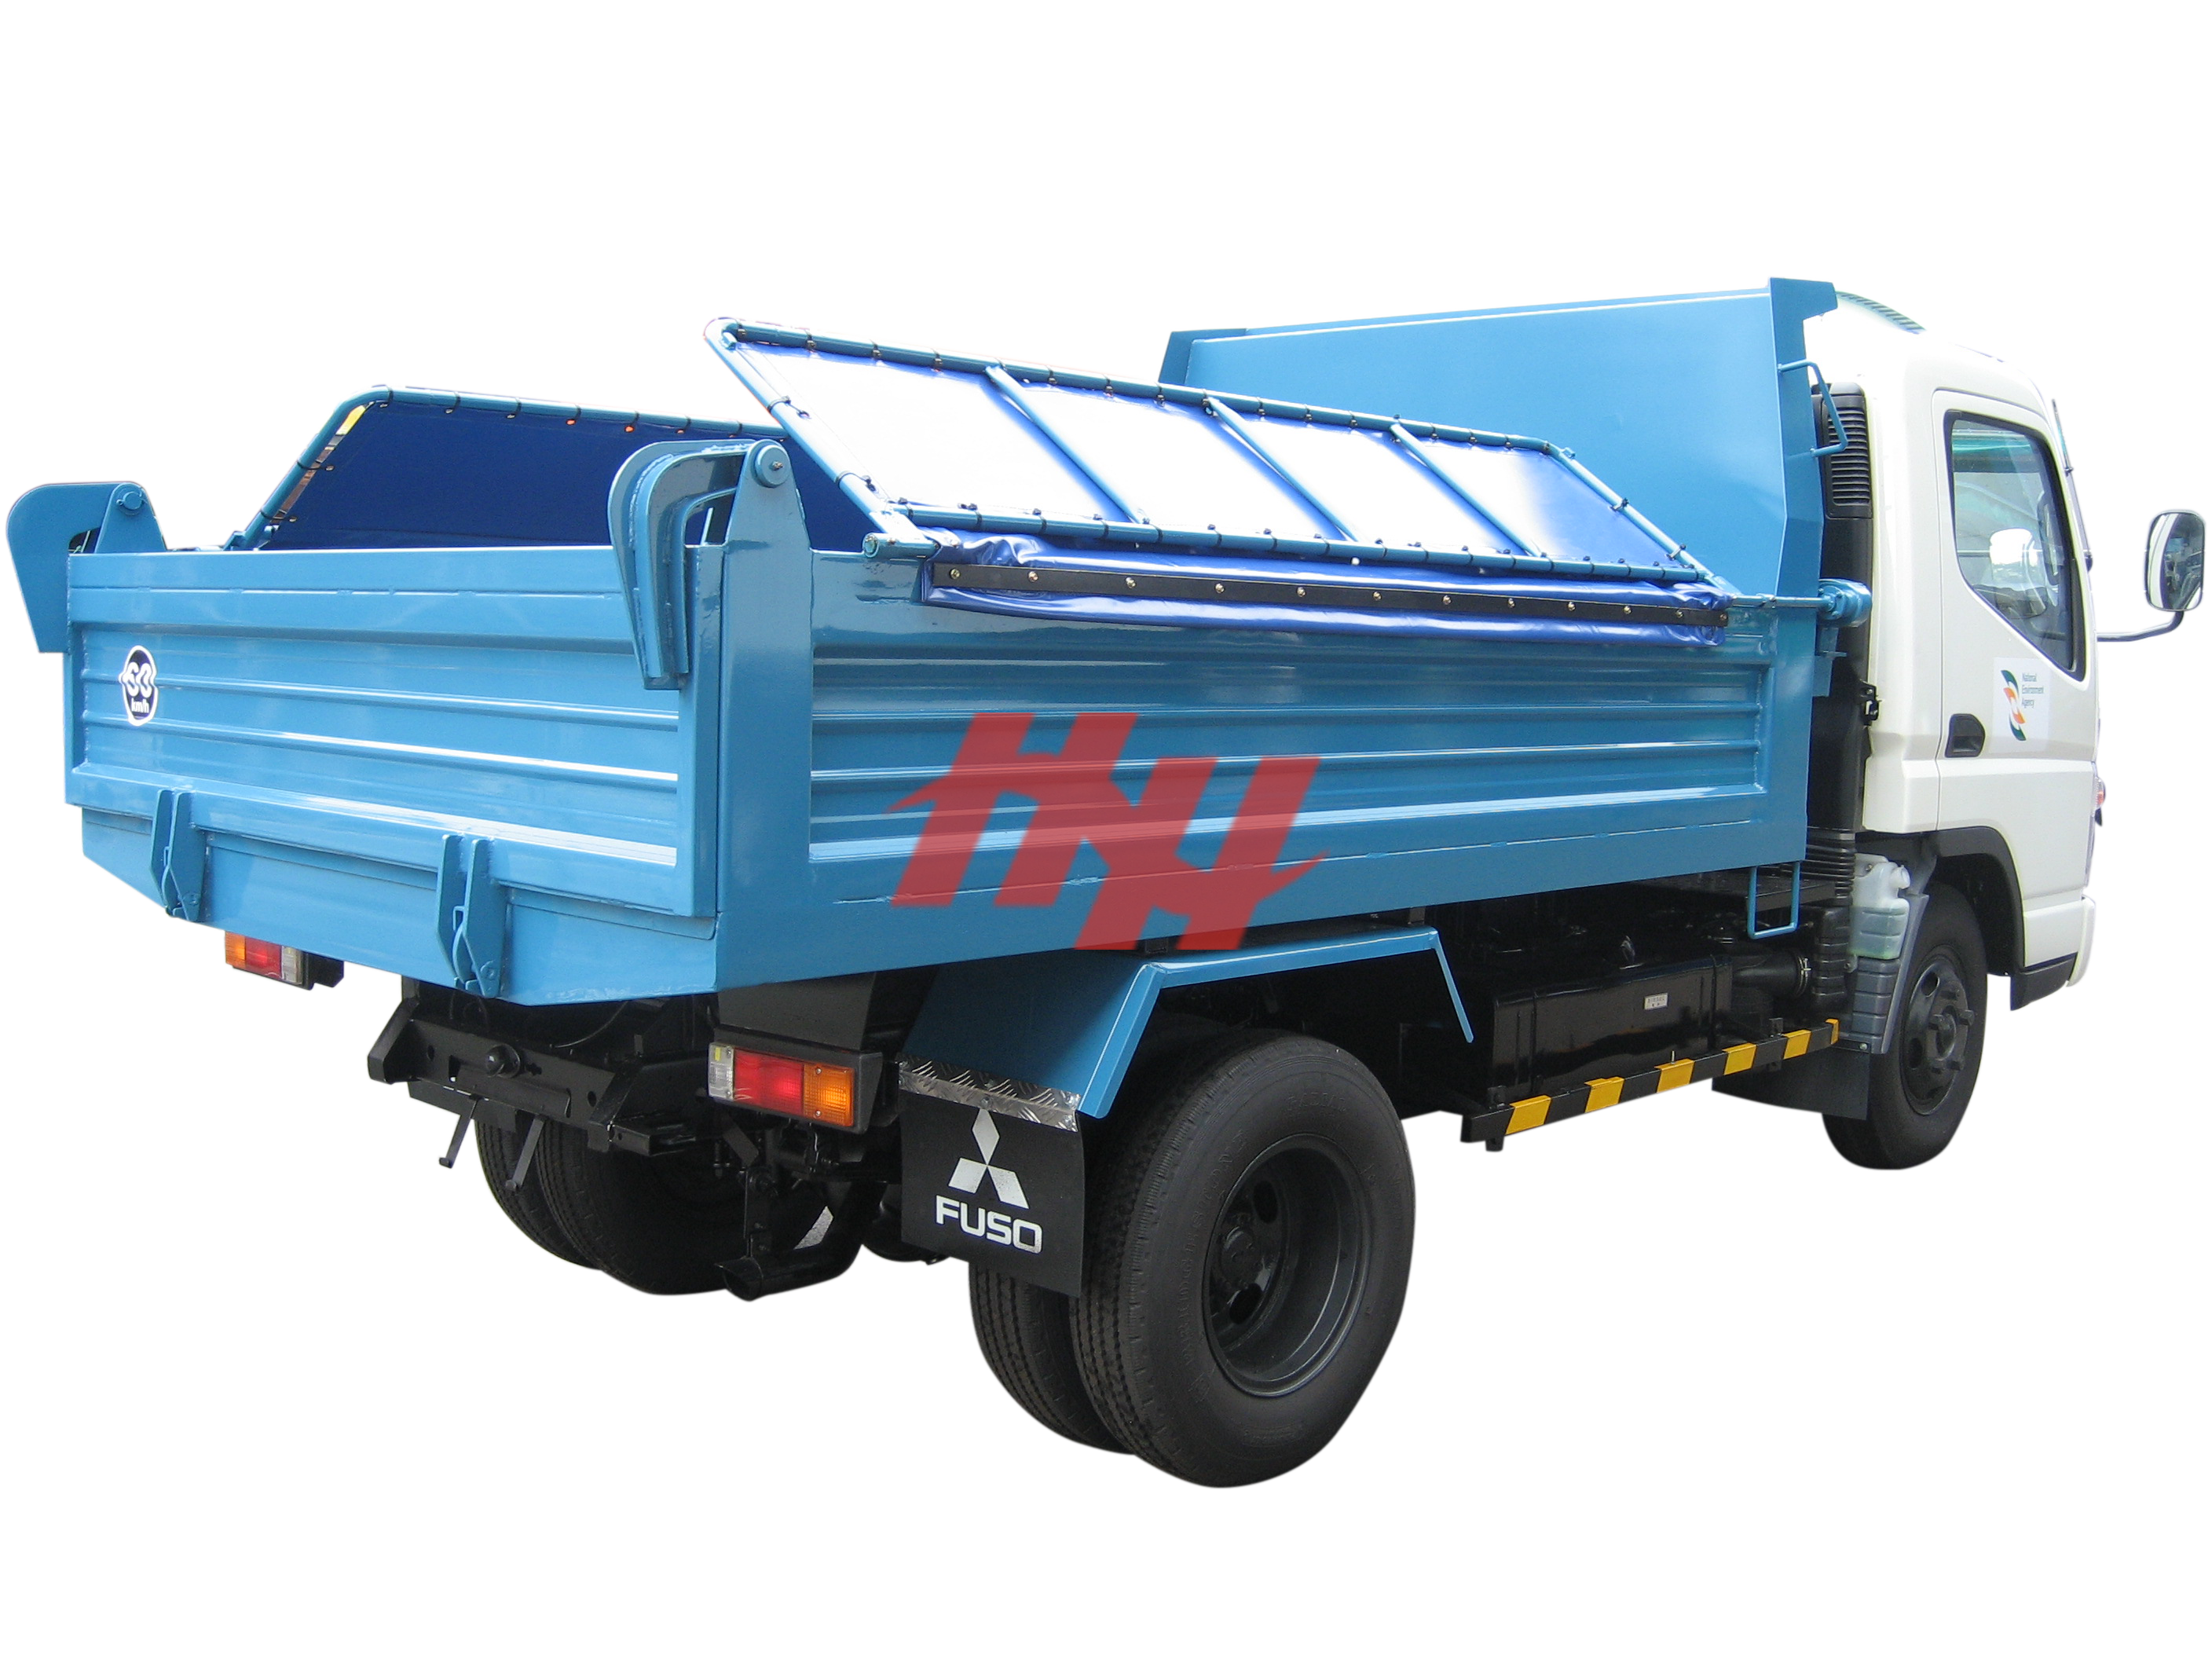 12fts tipper body with krm 143 hoist edit